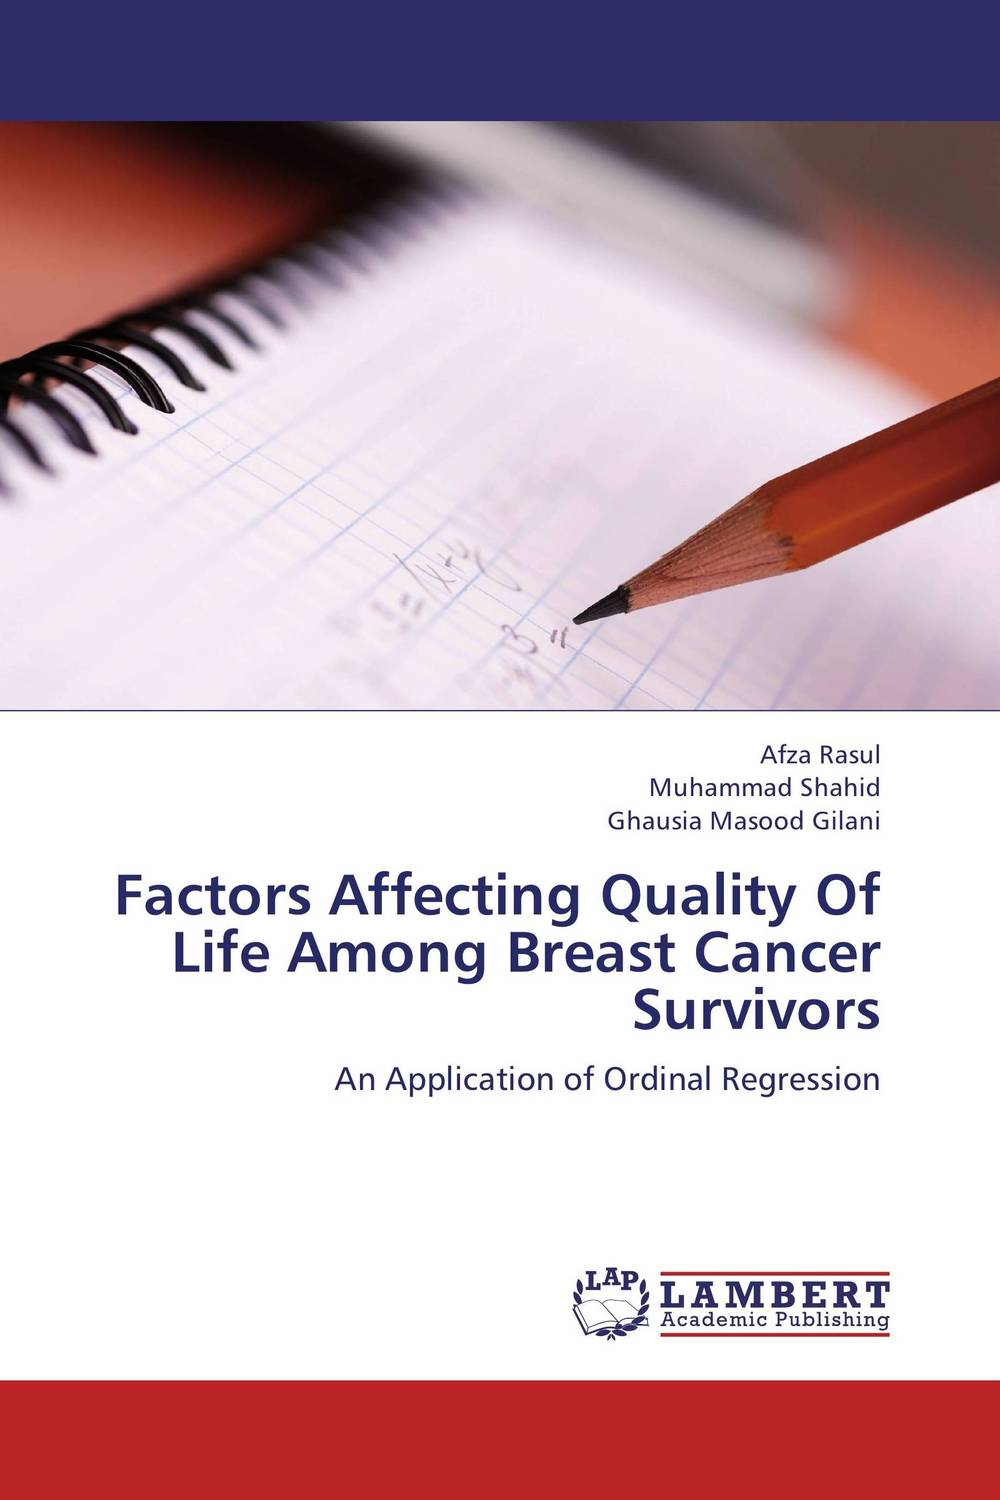 Factors Affecting Quality Of Life Among Breast Cancer Survivors choices in breast cancer treatment – medical specialists and cancer survivors tell you what you need to know